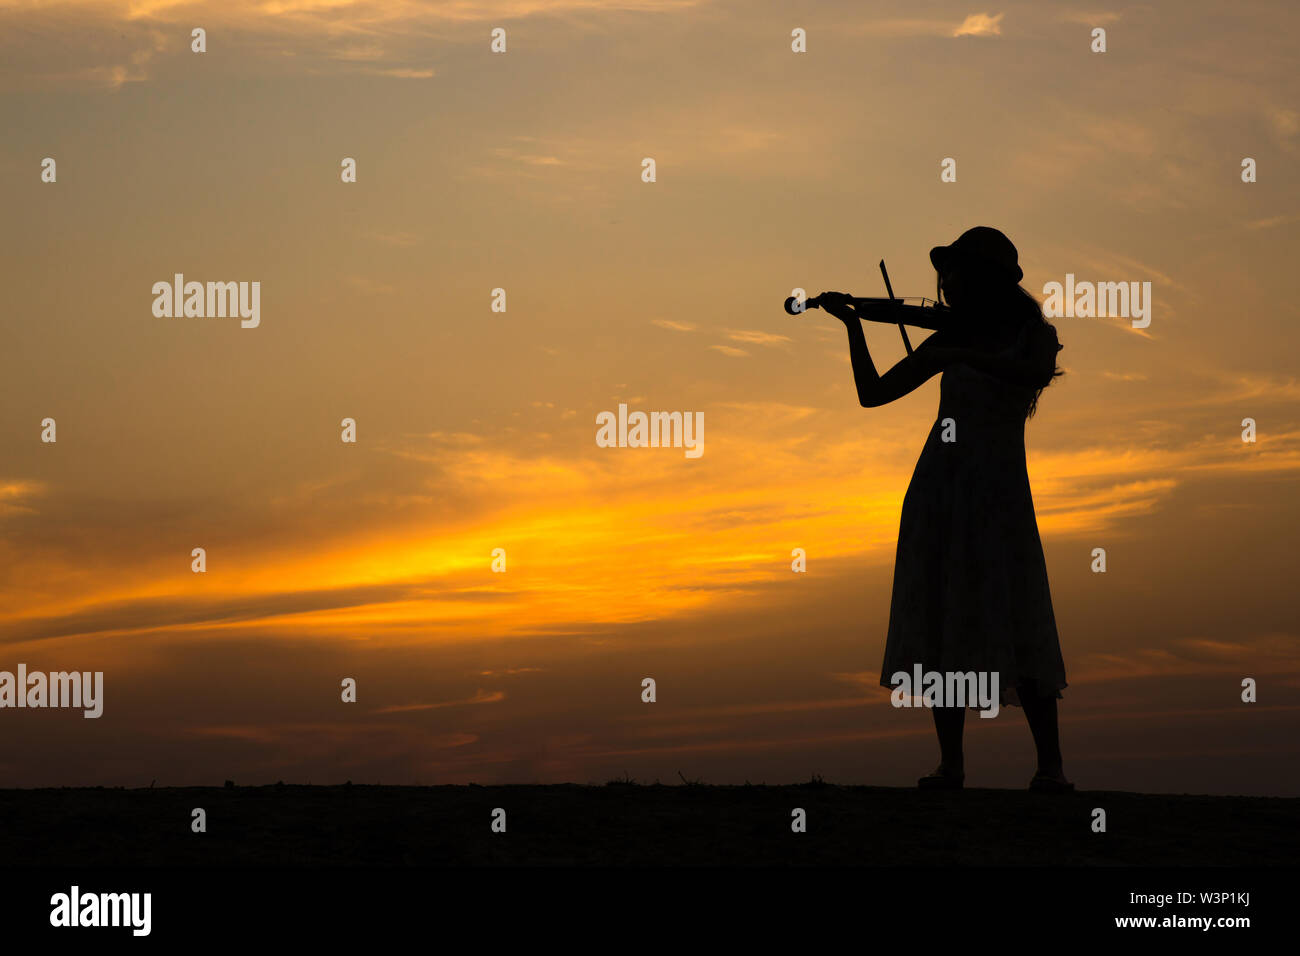 silhouette of asian woman play violin on sunset - Stock Image